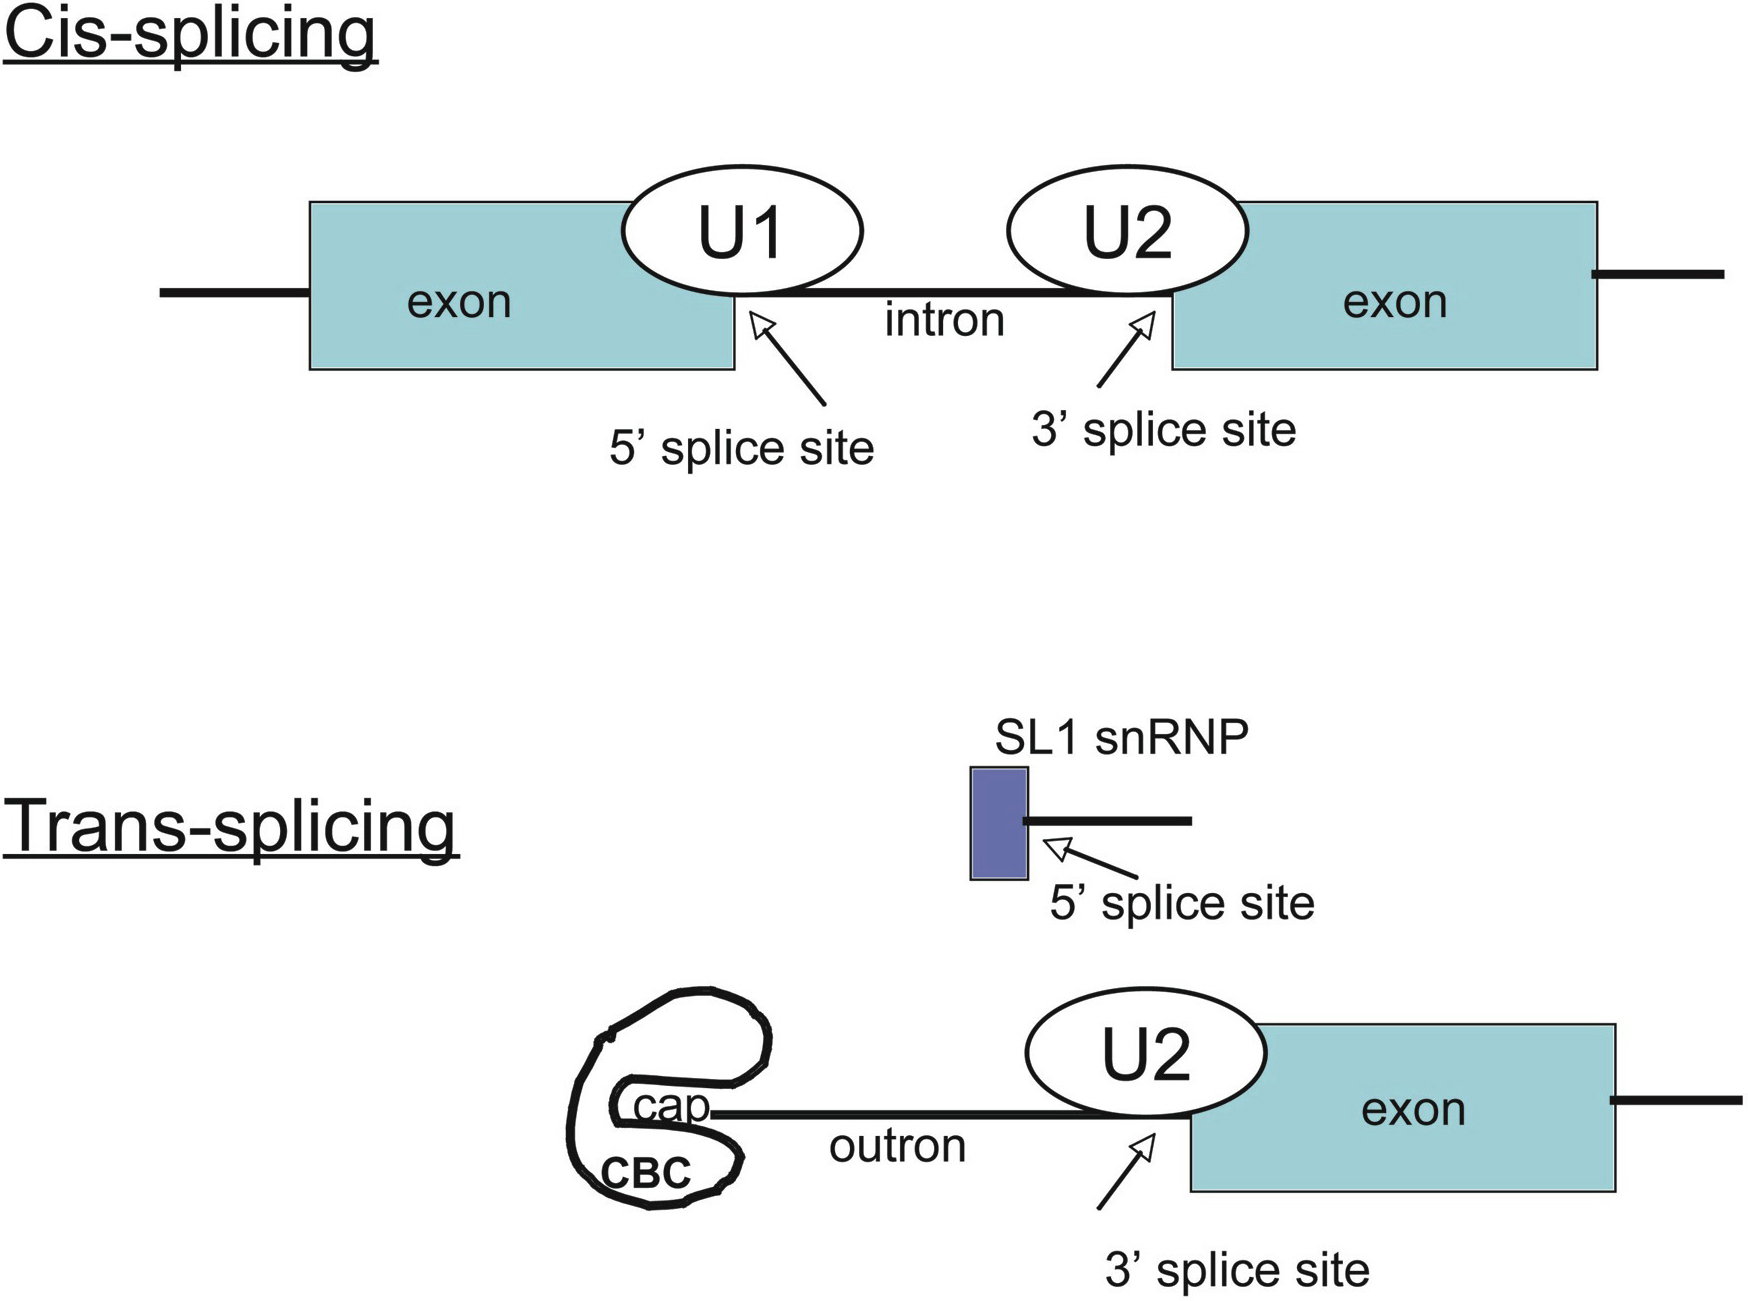 Trans-splicing and operons